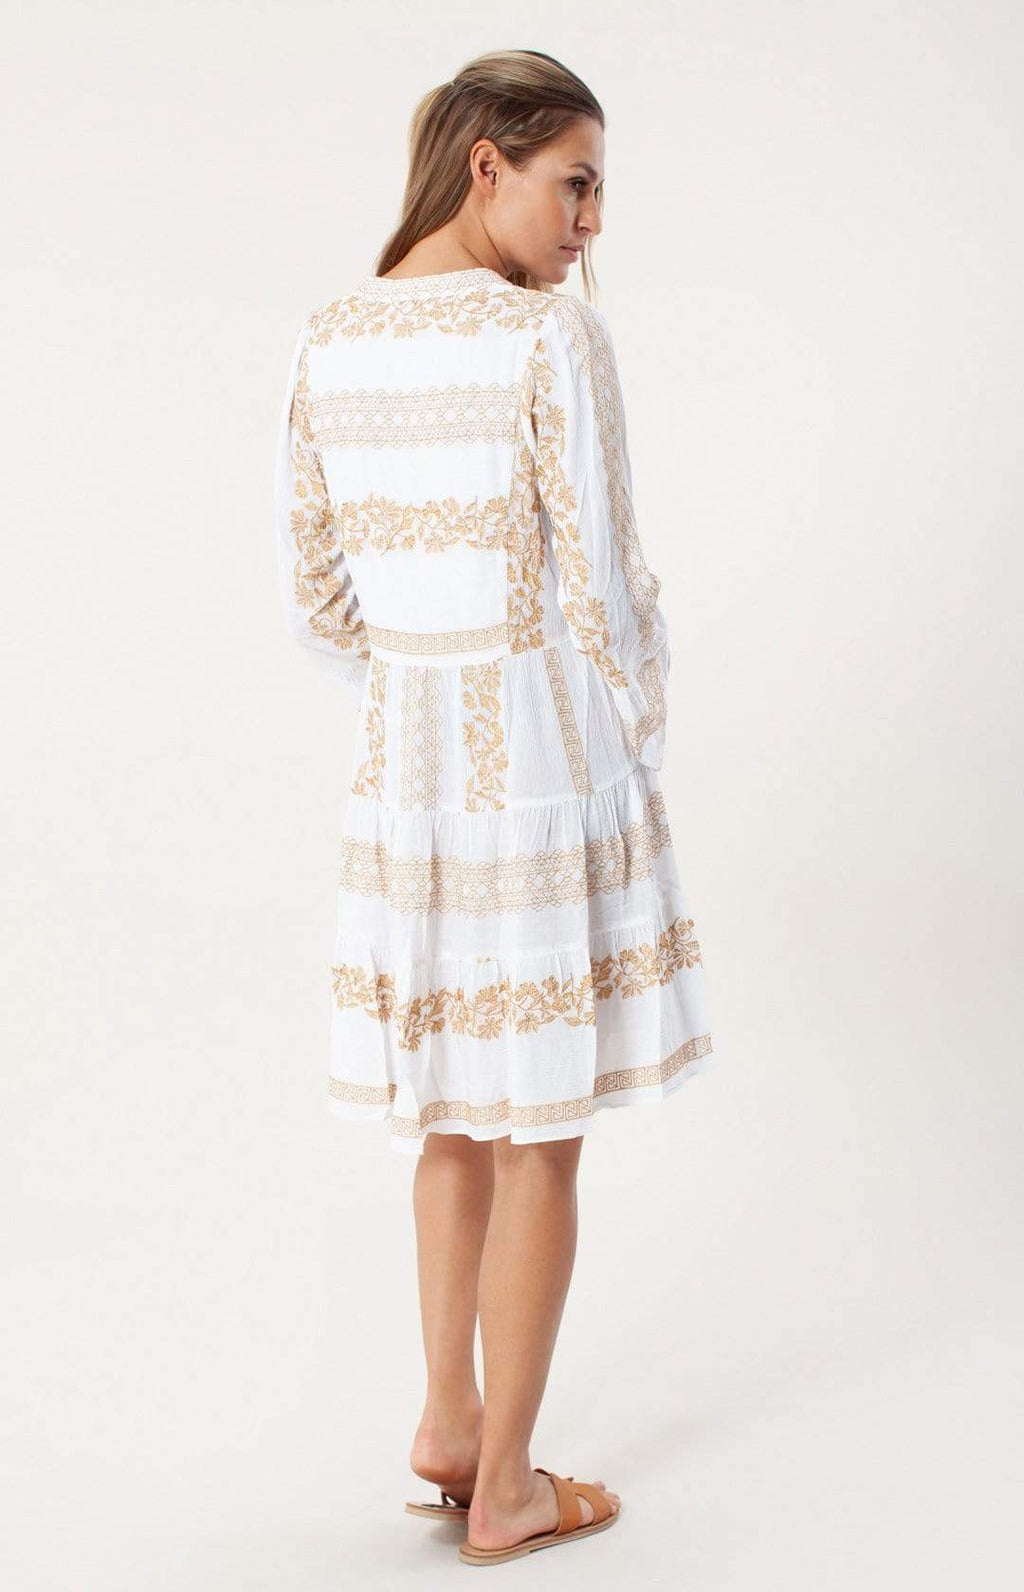 Hale Bob Dresses Hale Bob Mila Dress White With Gold Embroidery 05GS6885 izzi-of-baslow